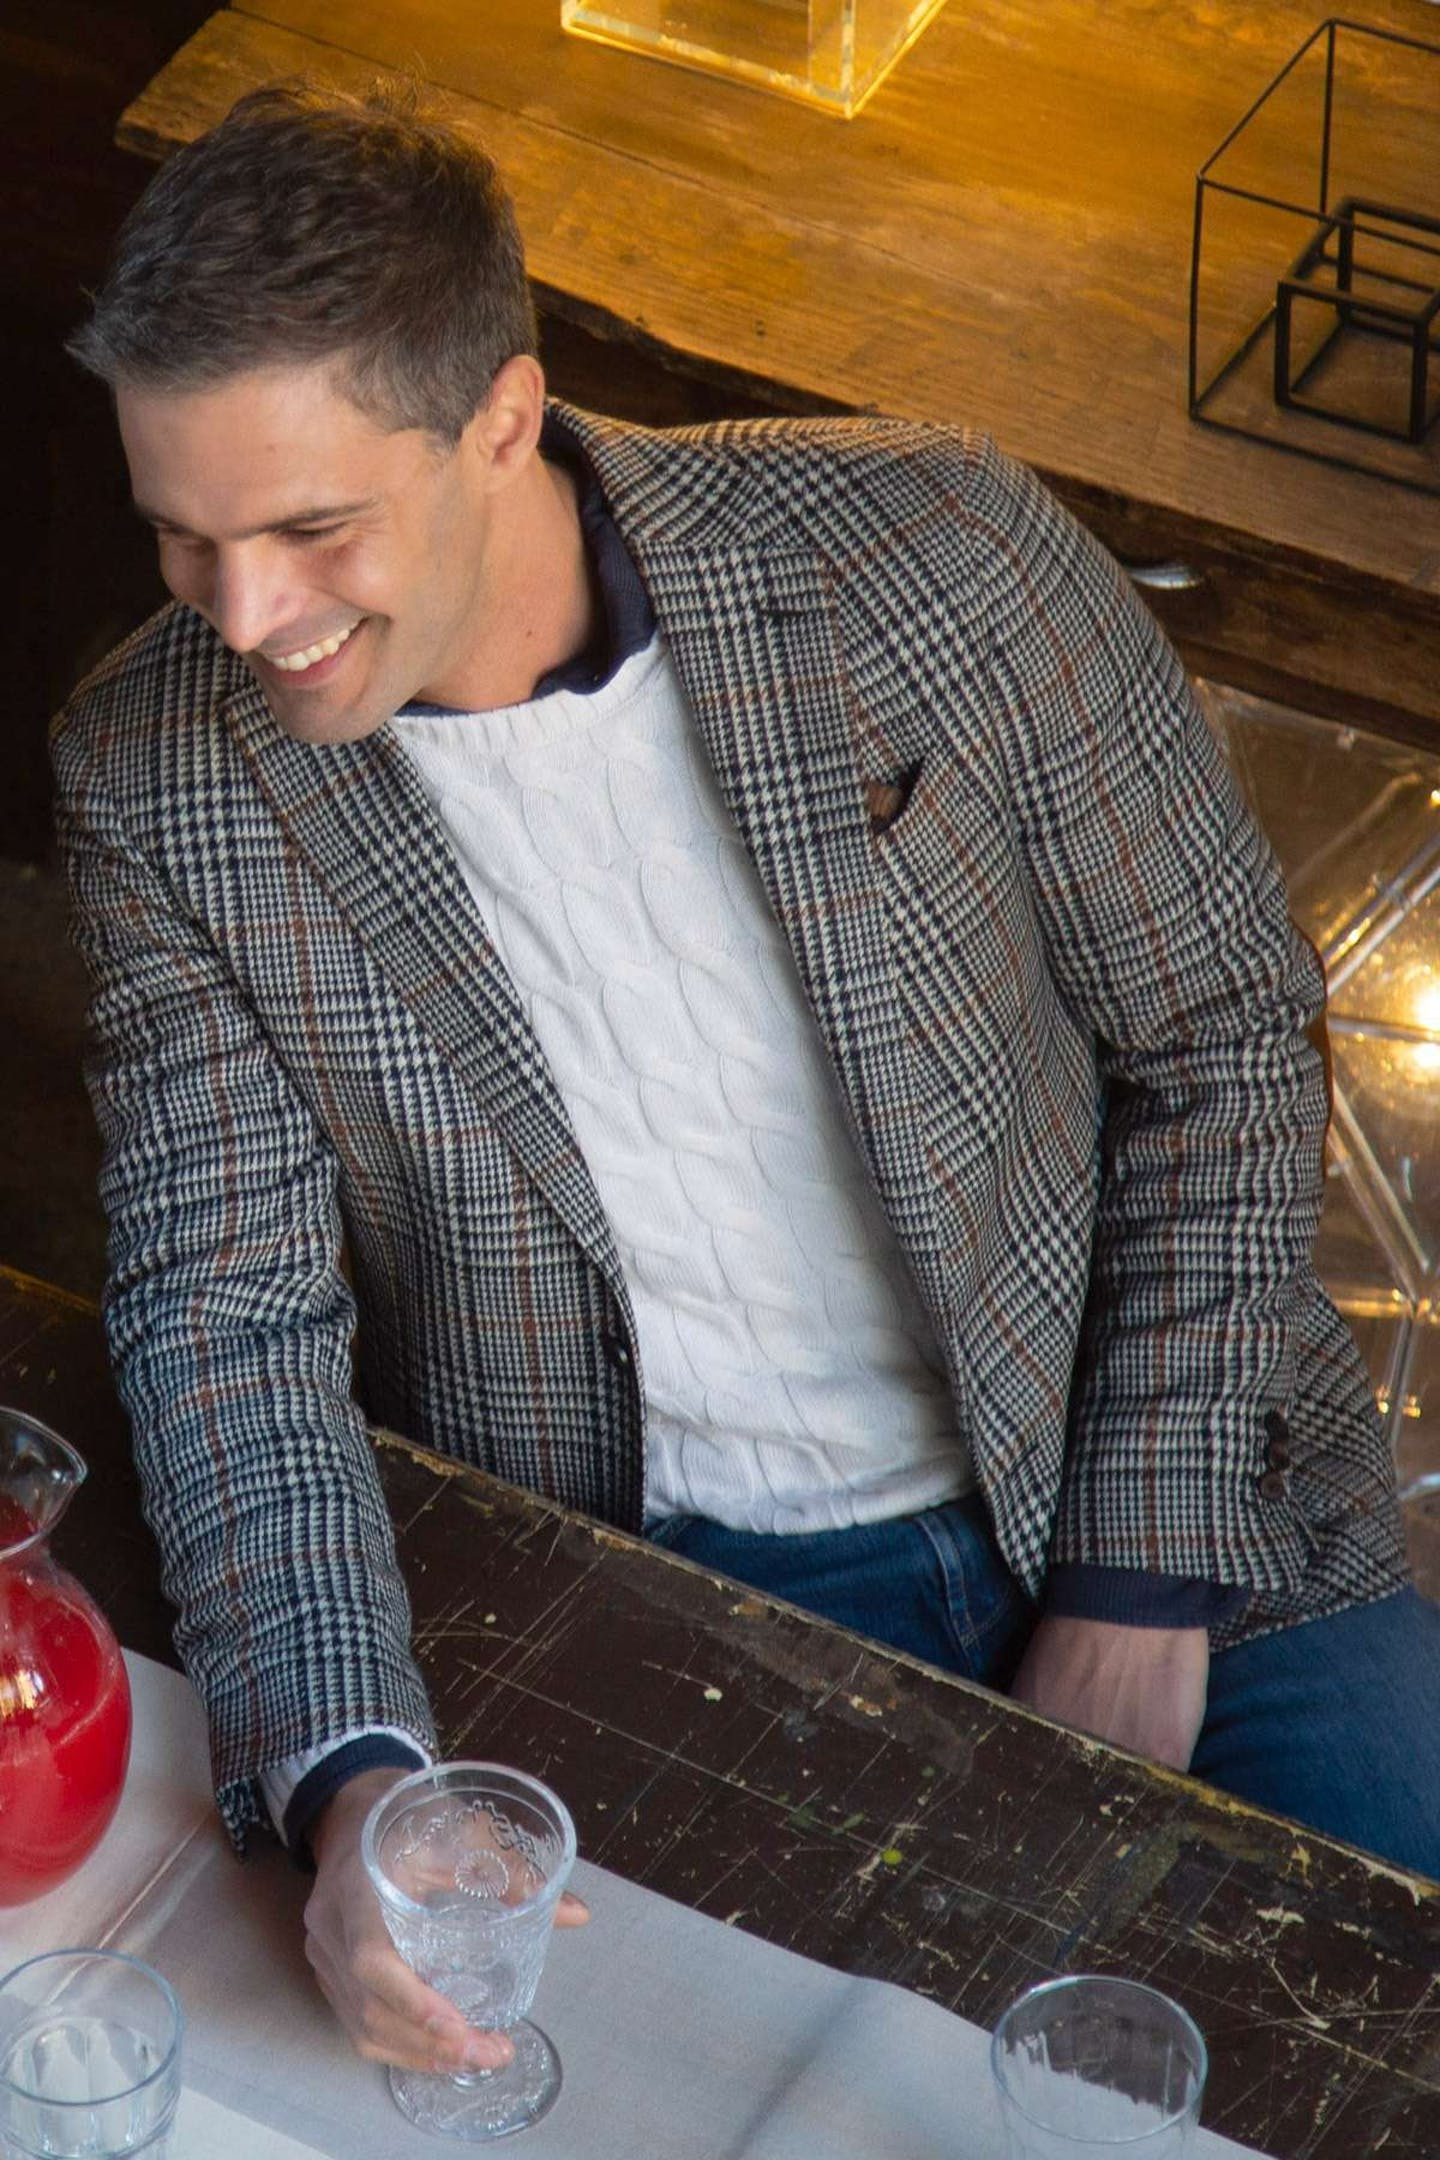 Prince of Wales fabric: How to wear glen plaid boggi milano jacket